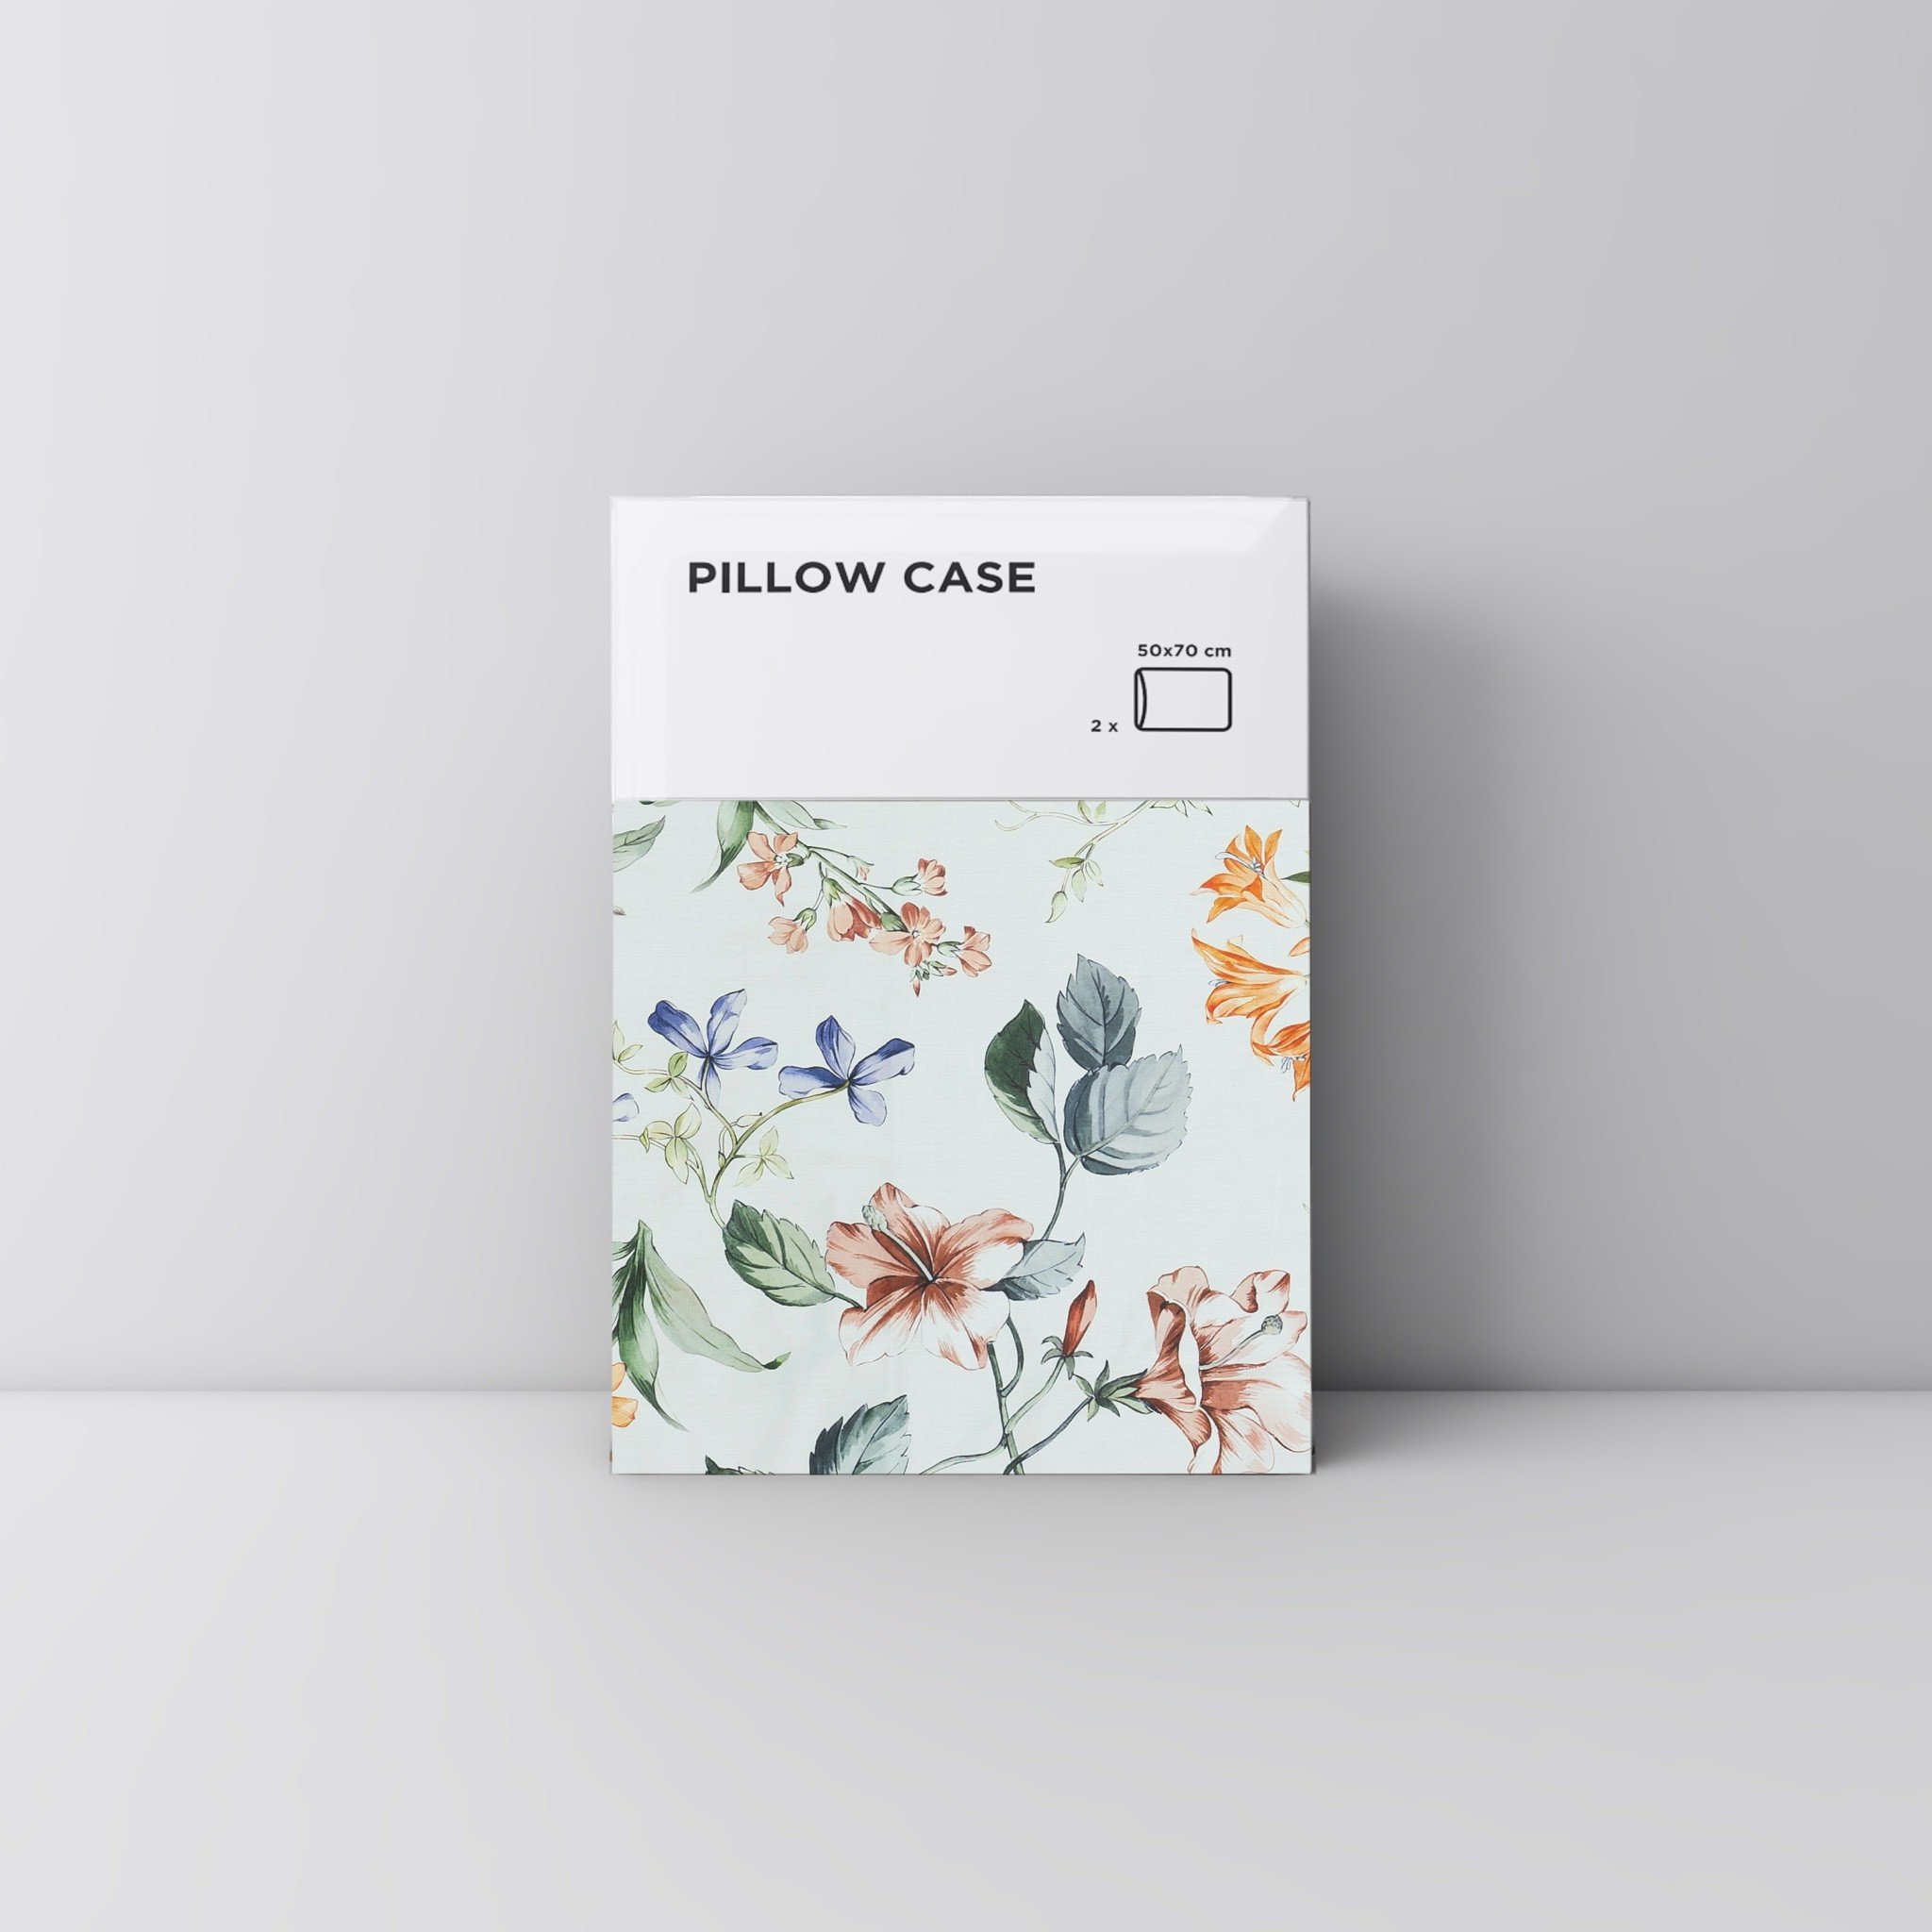 Pillow case 232 Floral